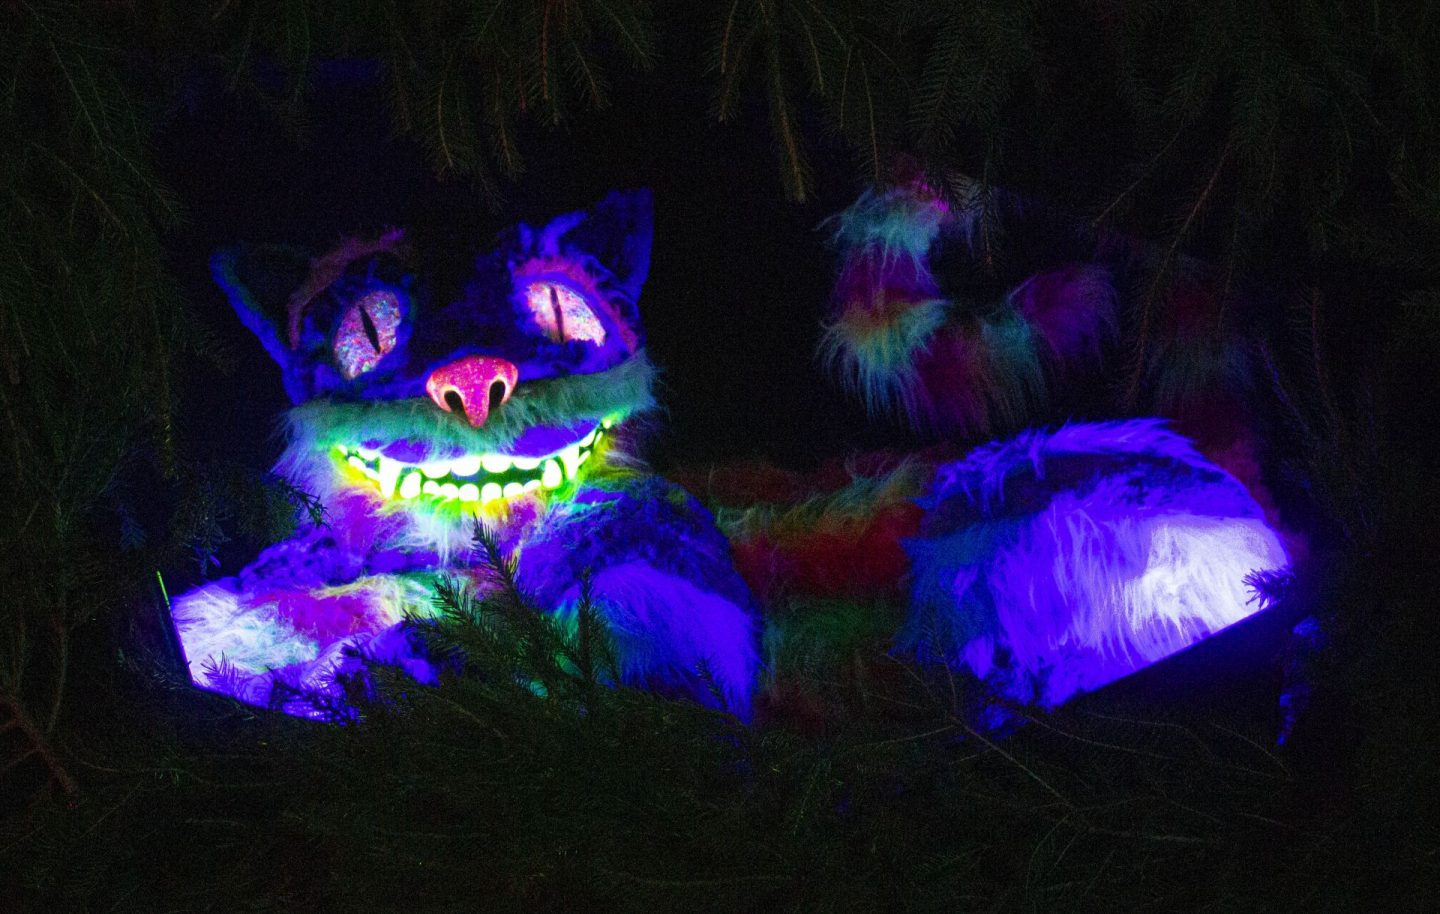 Cheshire Cat, The Cheshire Cat, Lewis Carroll, Alice in Wonderland, Hever Castle